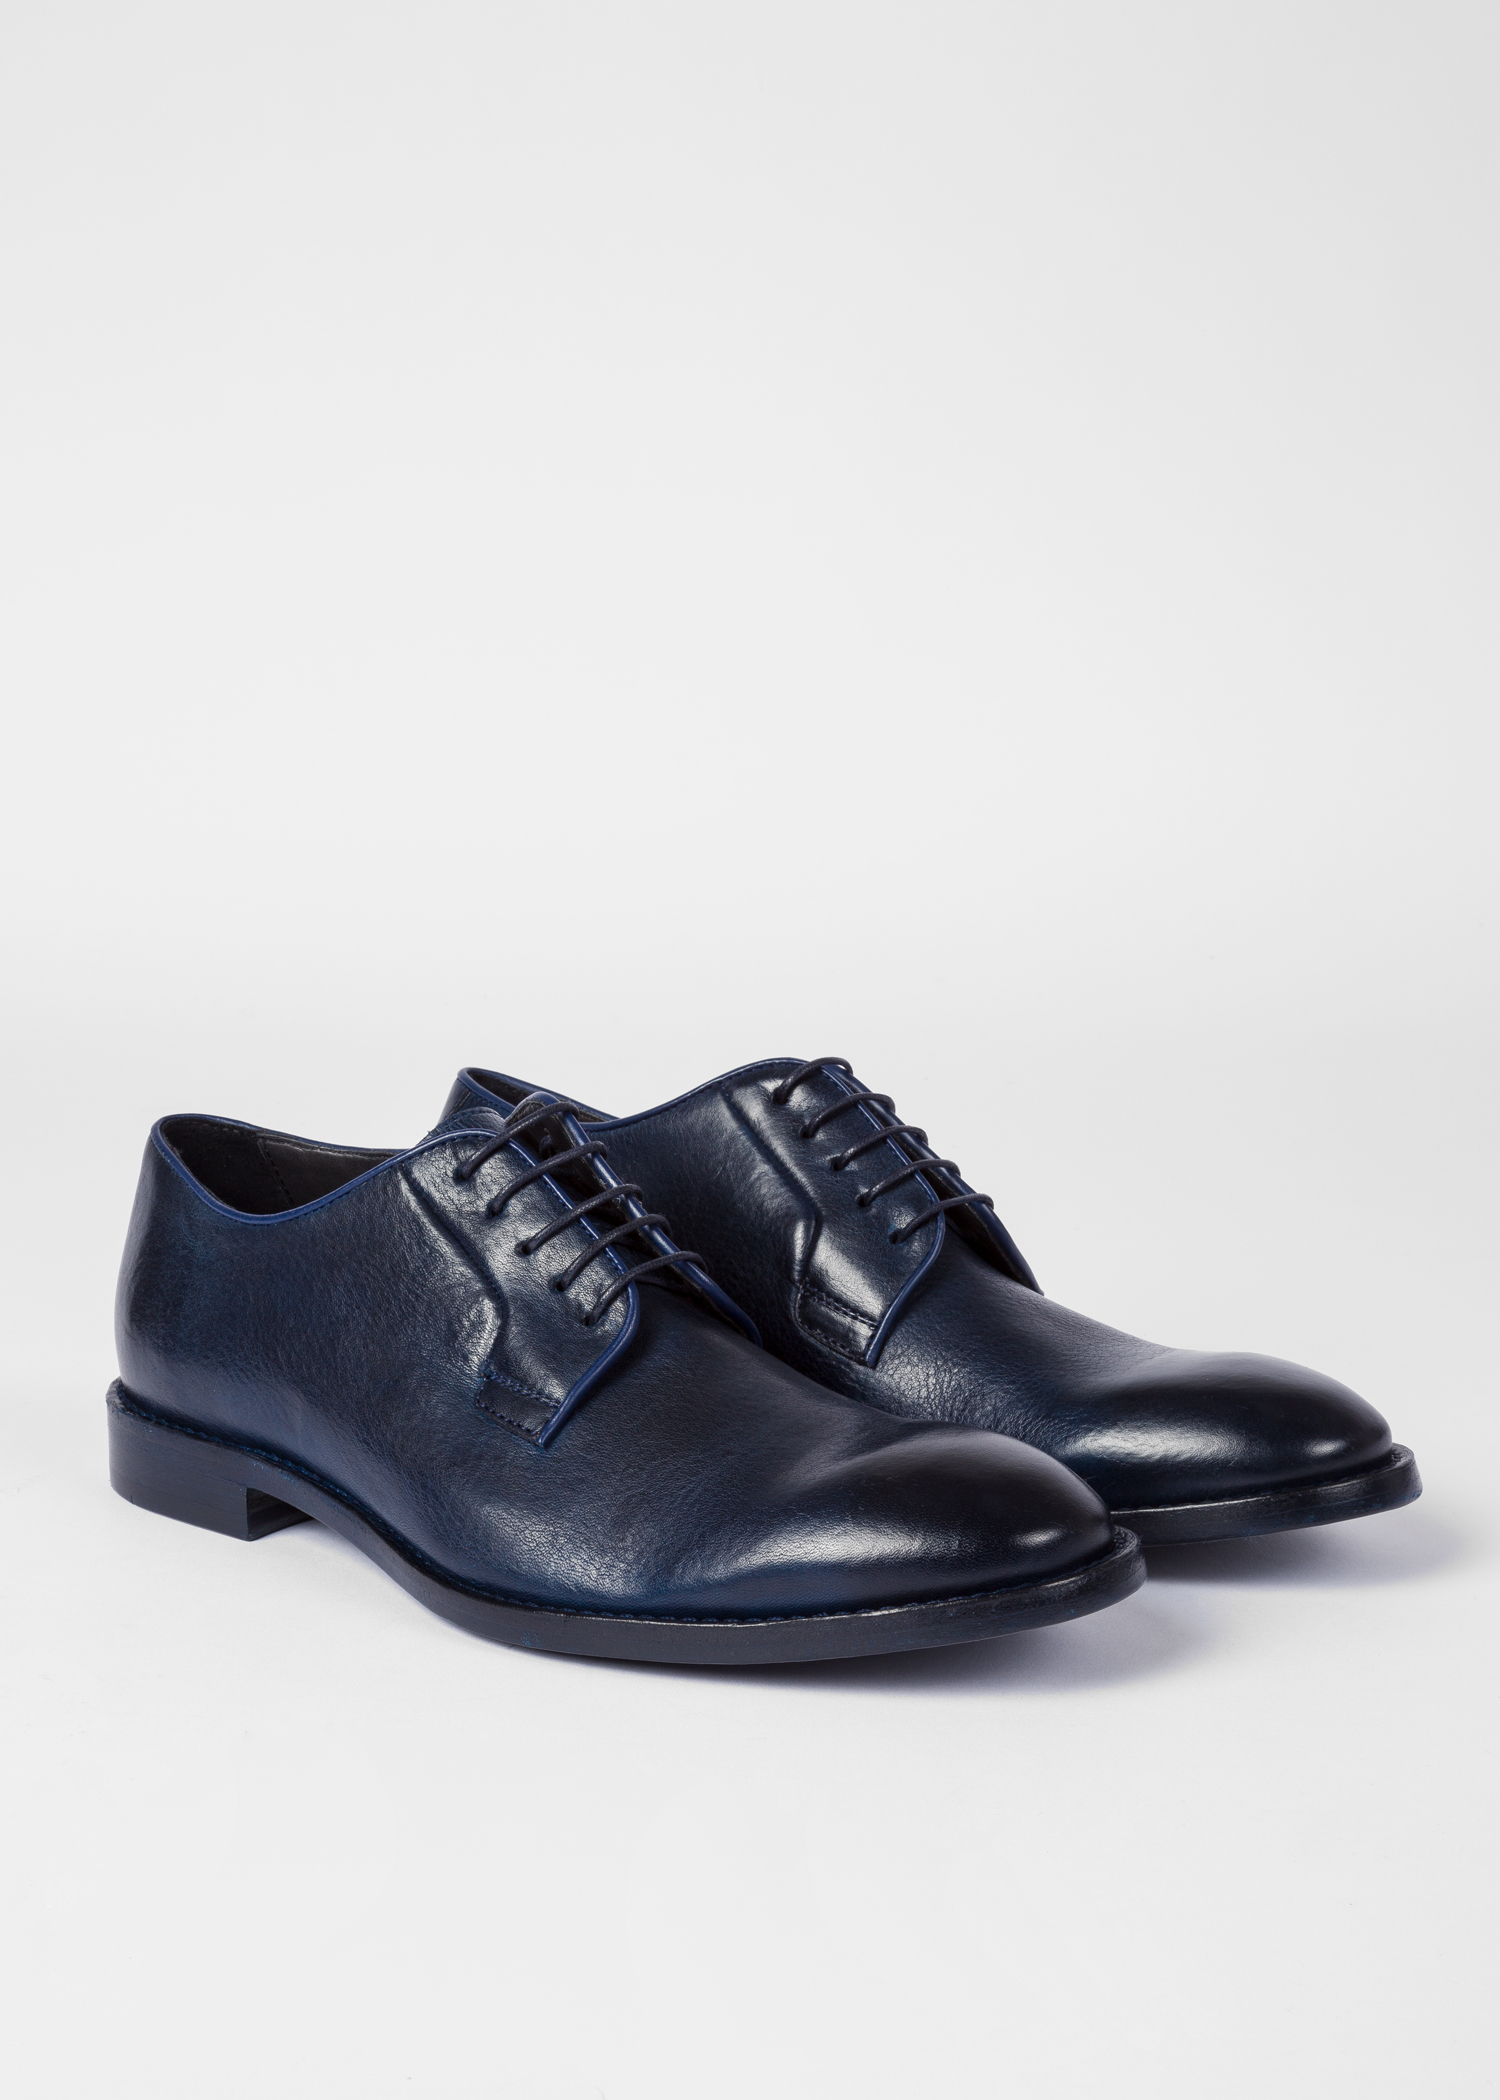 d7803156ac1 Men's Dark Navy Leather 'Chester' Flexible Travel Shoes - Paul Smith ...